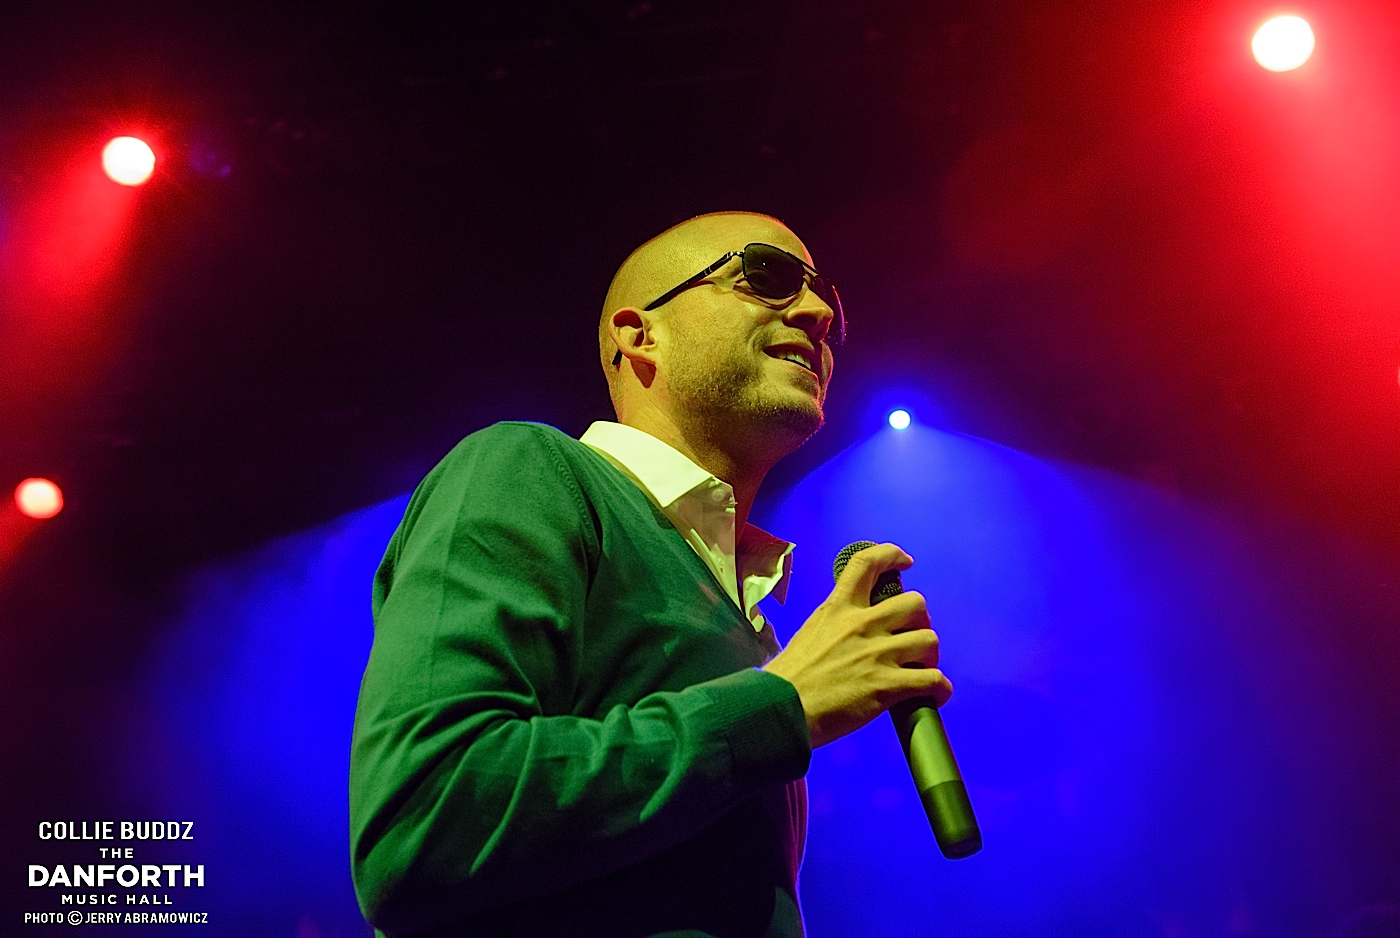 COLLIE BUDDZ performs at The Danforth Music Hall.